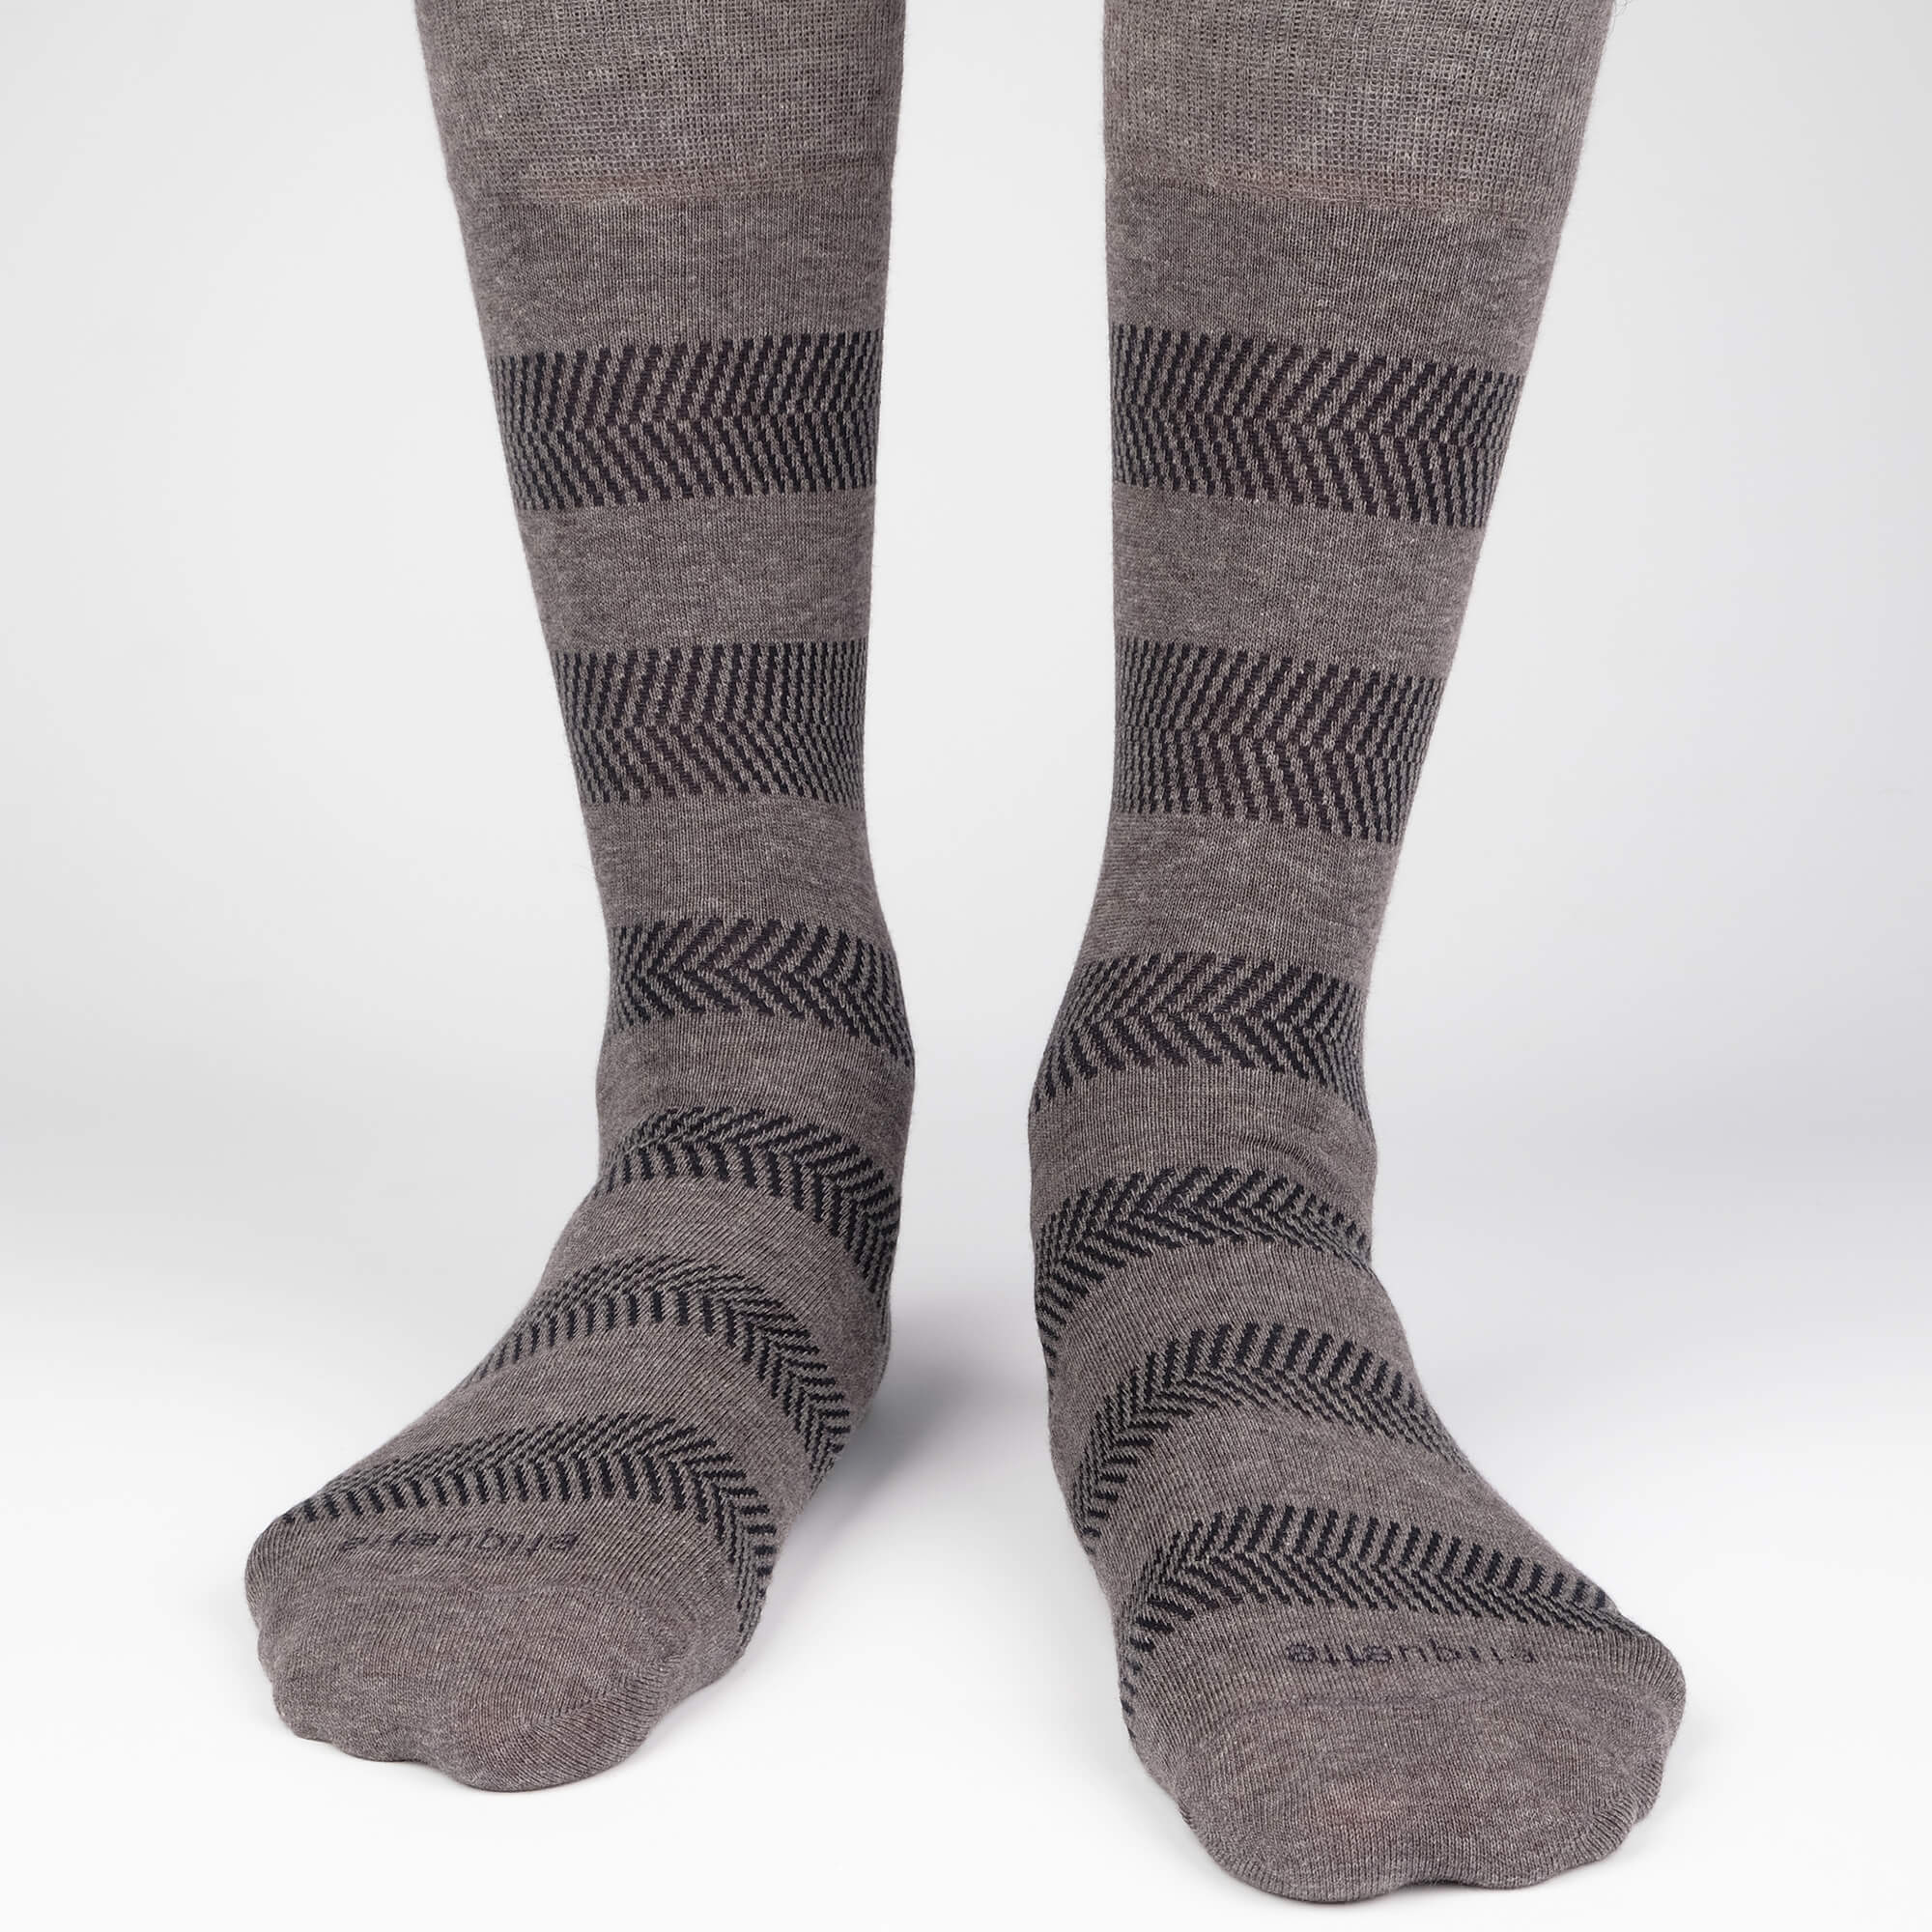 Mens Socks - Herringbone Men's Socks Gift Box - Grey⎪Etiquette Clothiers